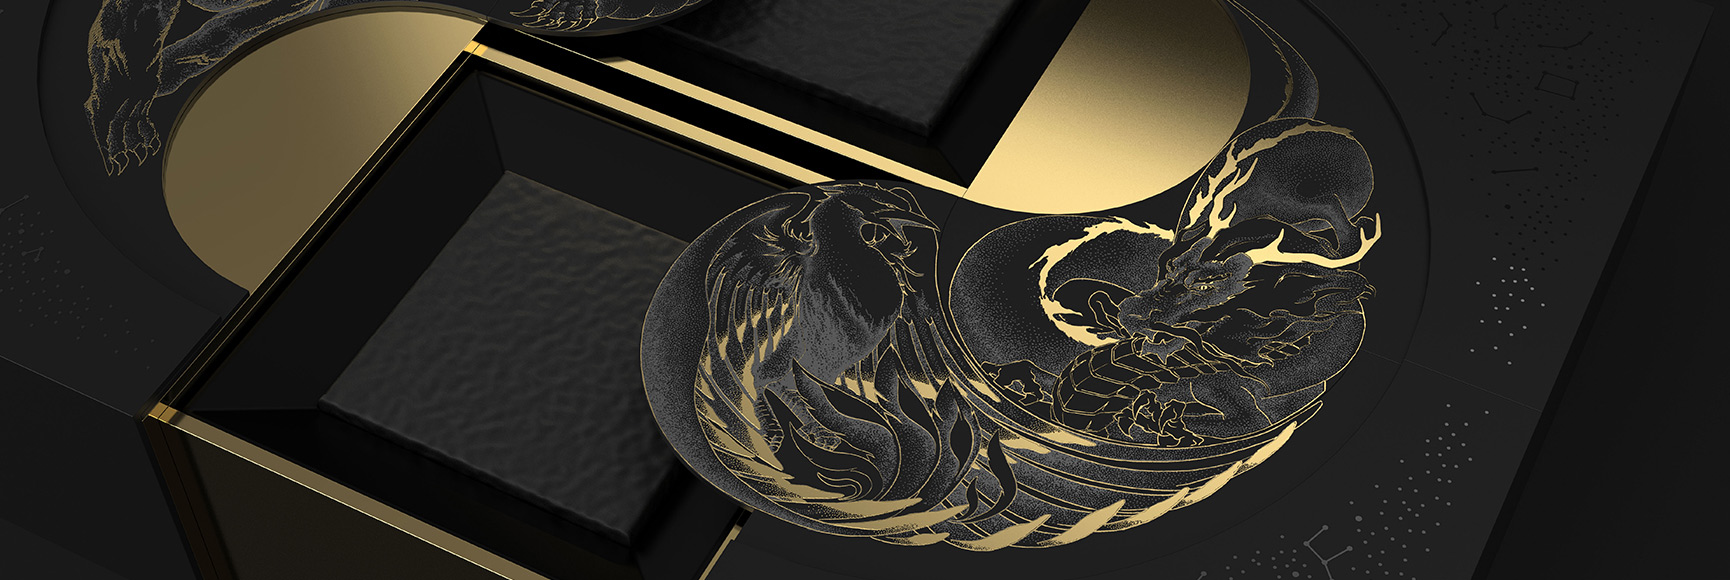 Dianhong Four Beasts Tea PR Gift Packaging Featured Image